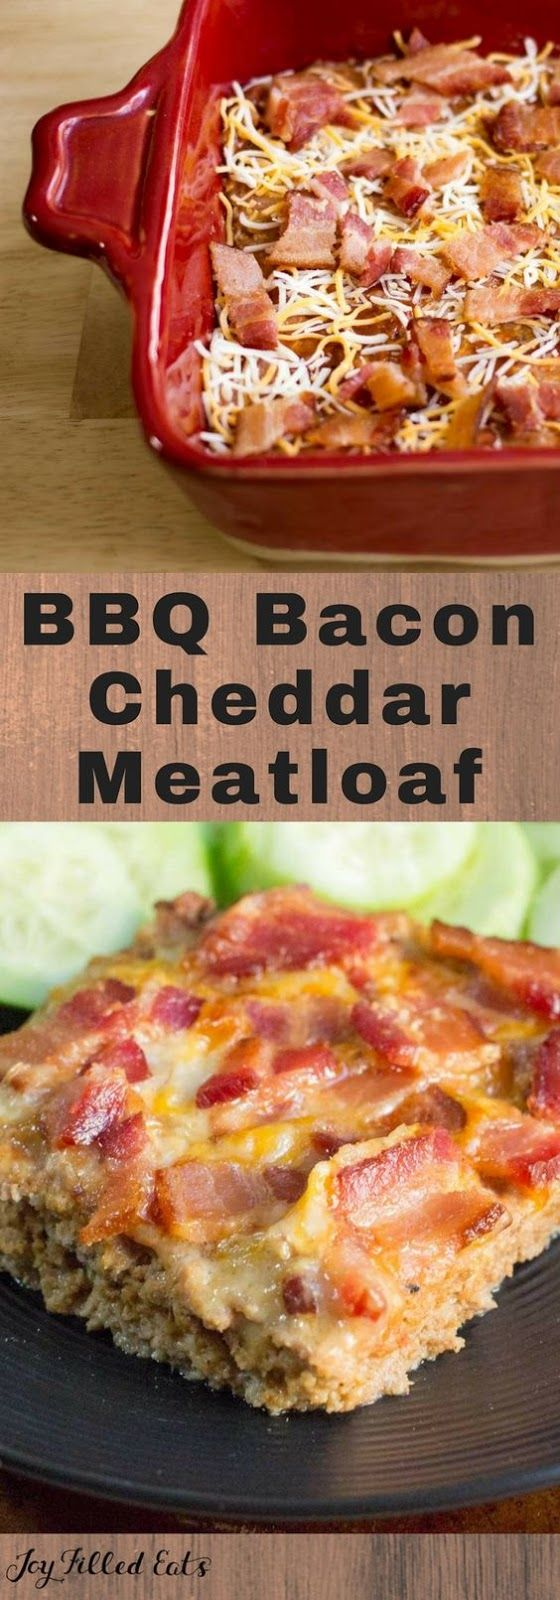 BBQ BACON CHEDDAR MEATLOAF | Food And Cake Recipes